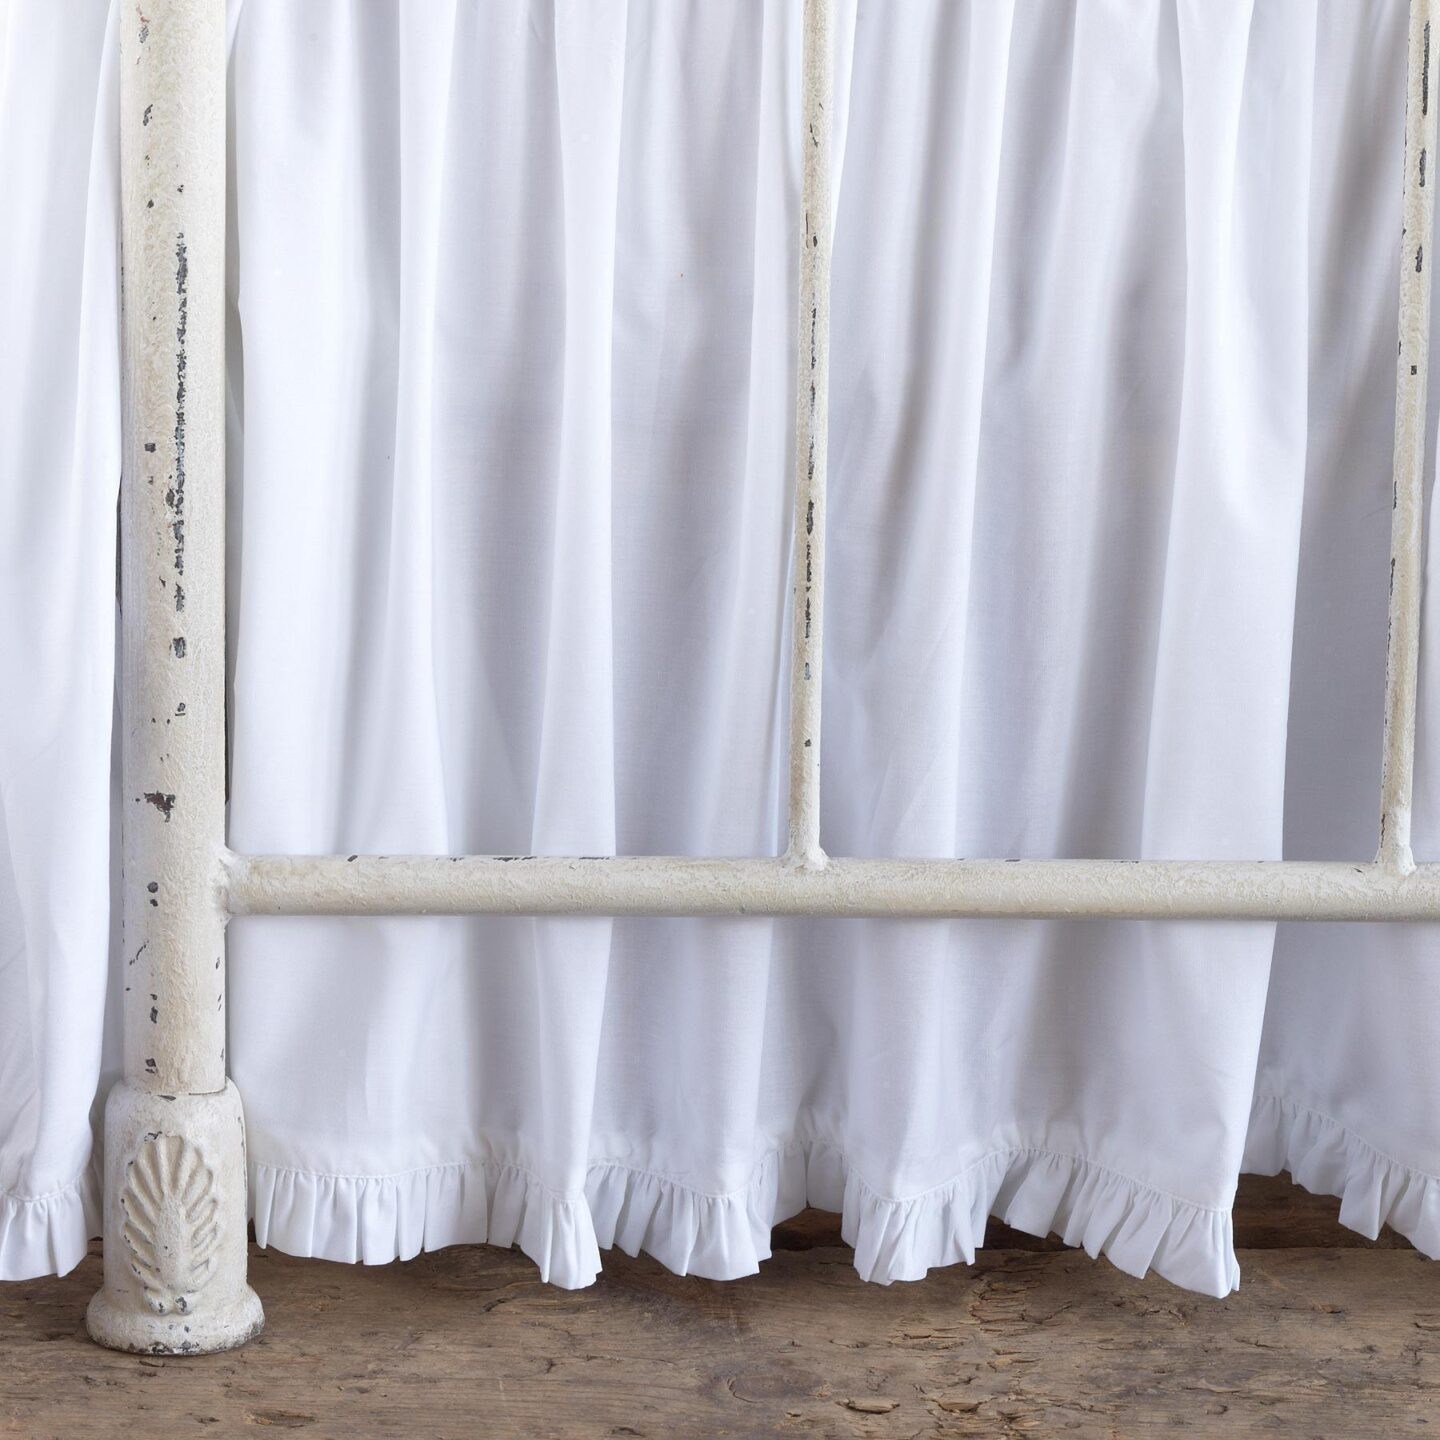 Country ruffle bedskirt from Sundance. #bedroomdecor #bedskirt #interiordesign